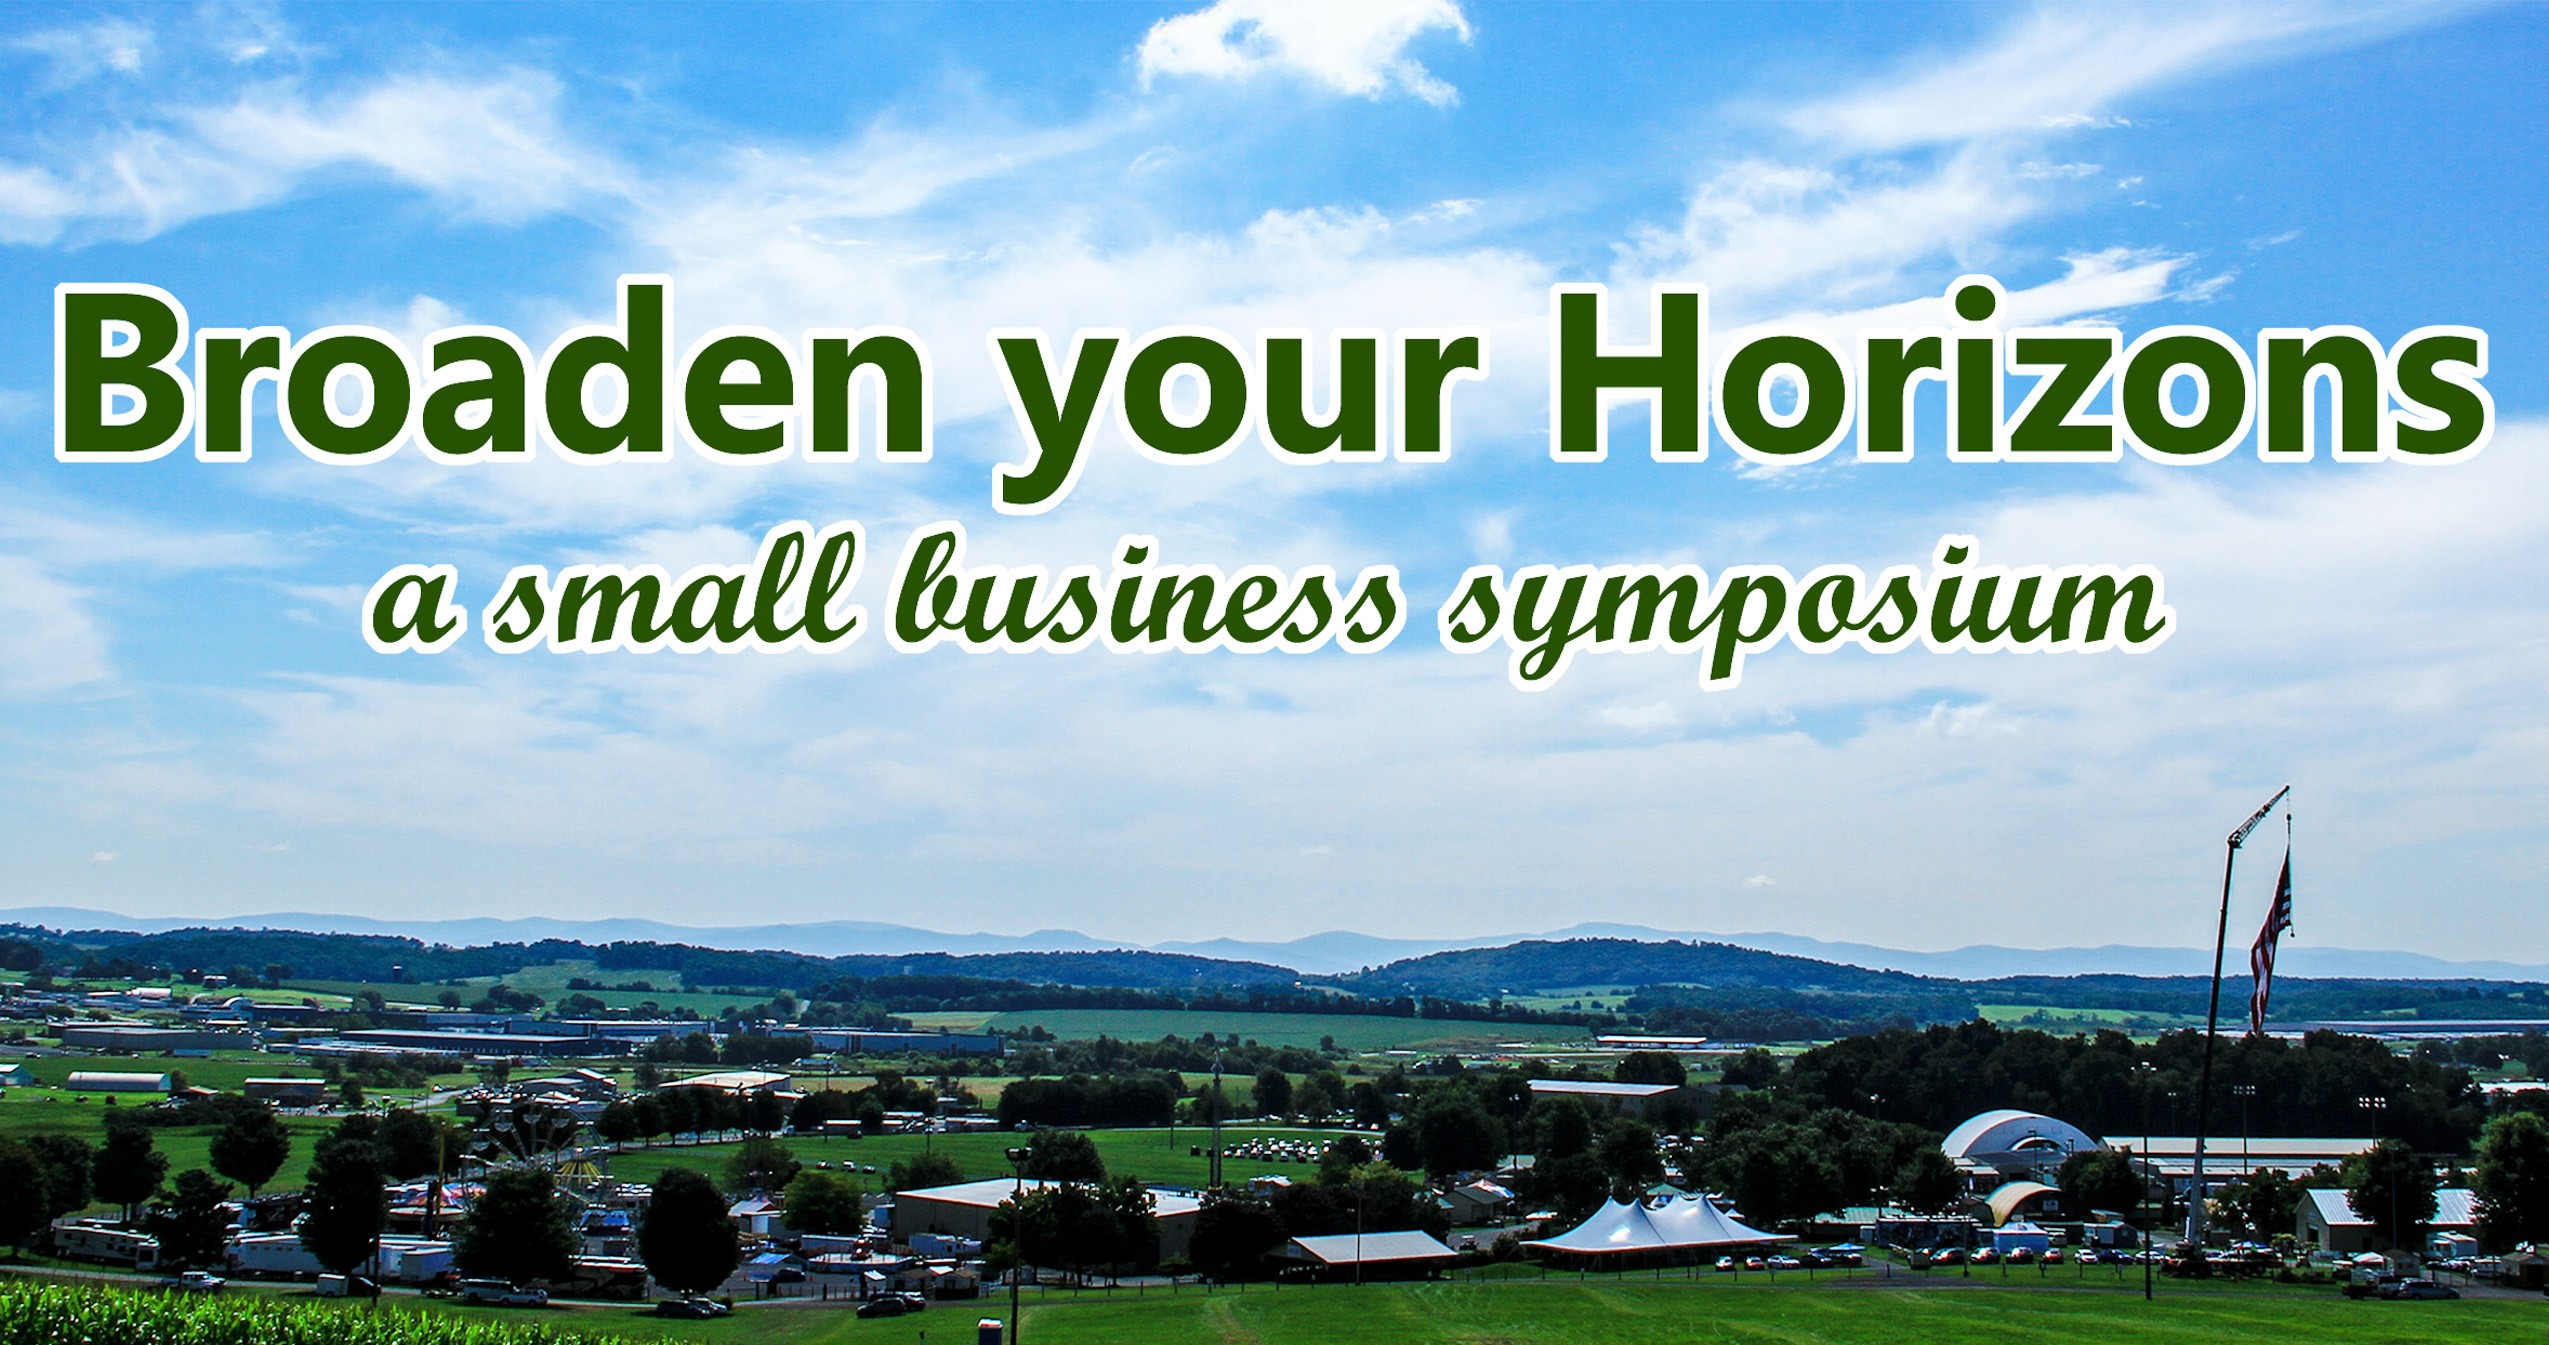 Broaden Your Horizons - a small business symposium @ VMI Hall of Valor, Marshall Hall | Lexington | Virginia | United States